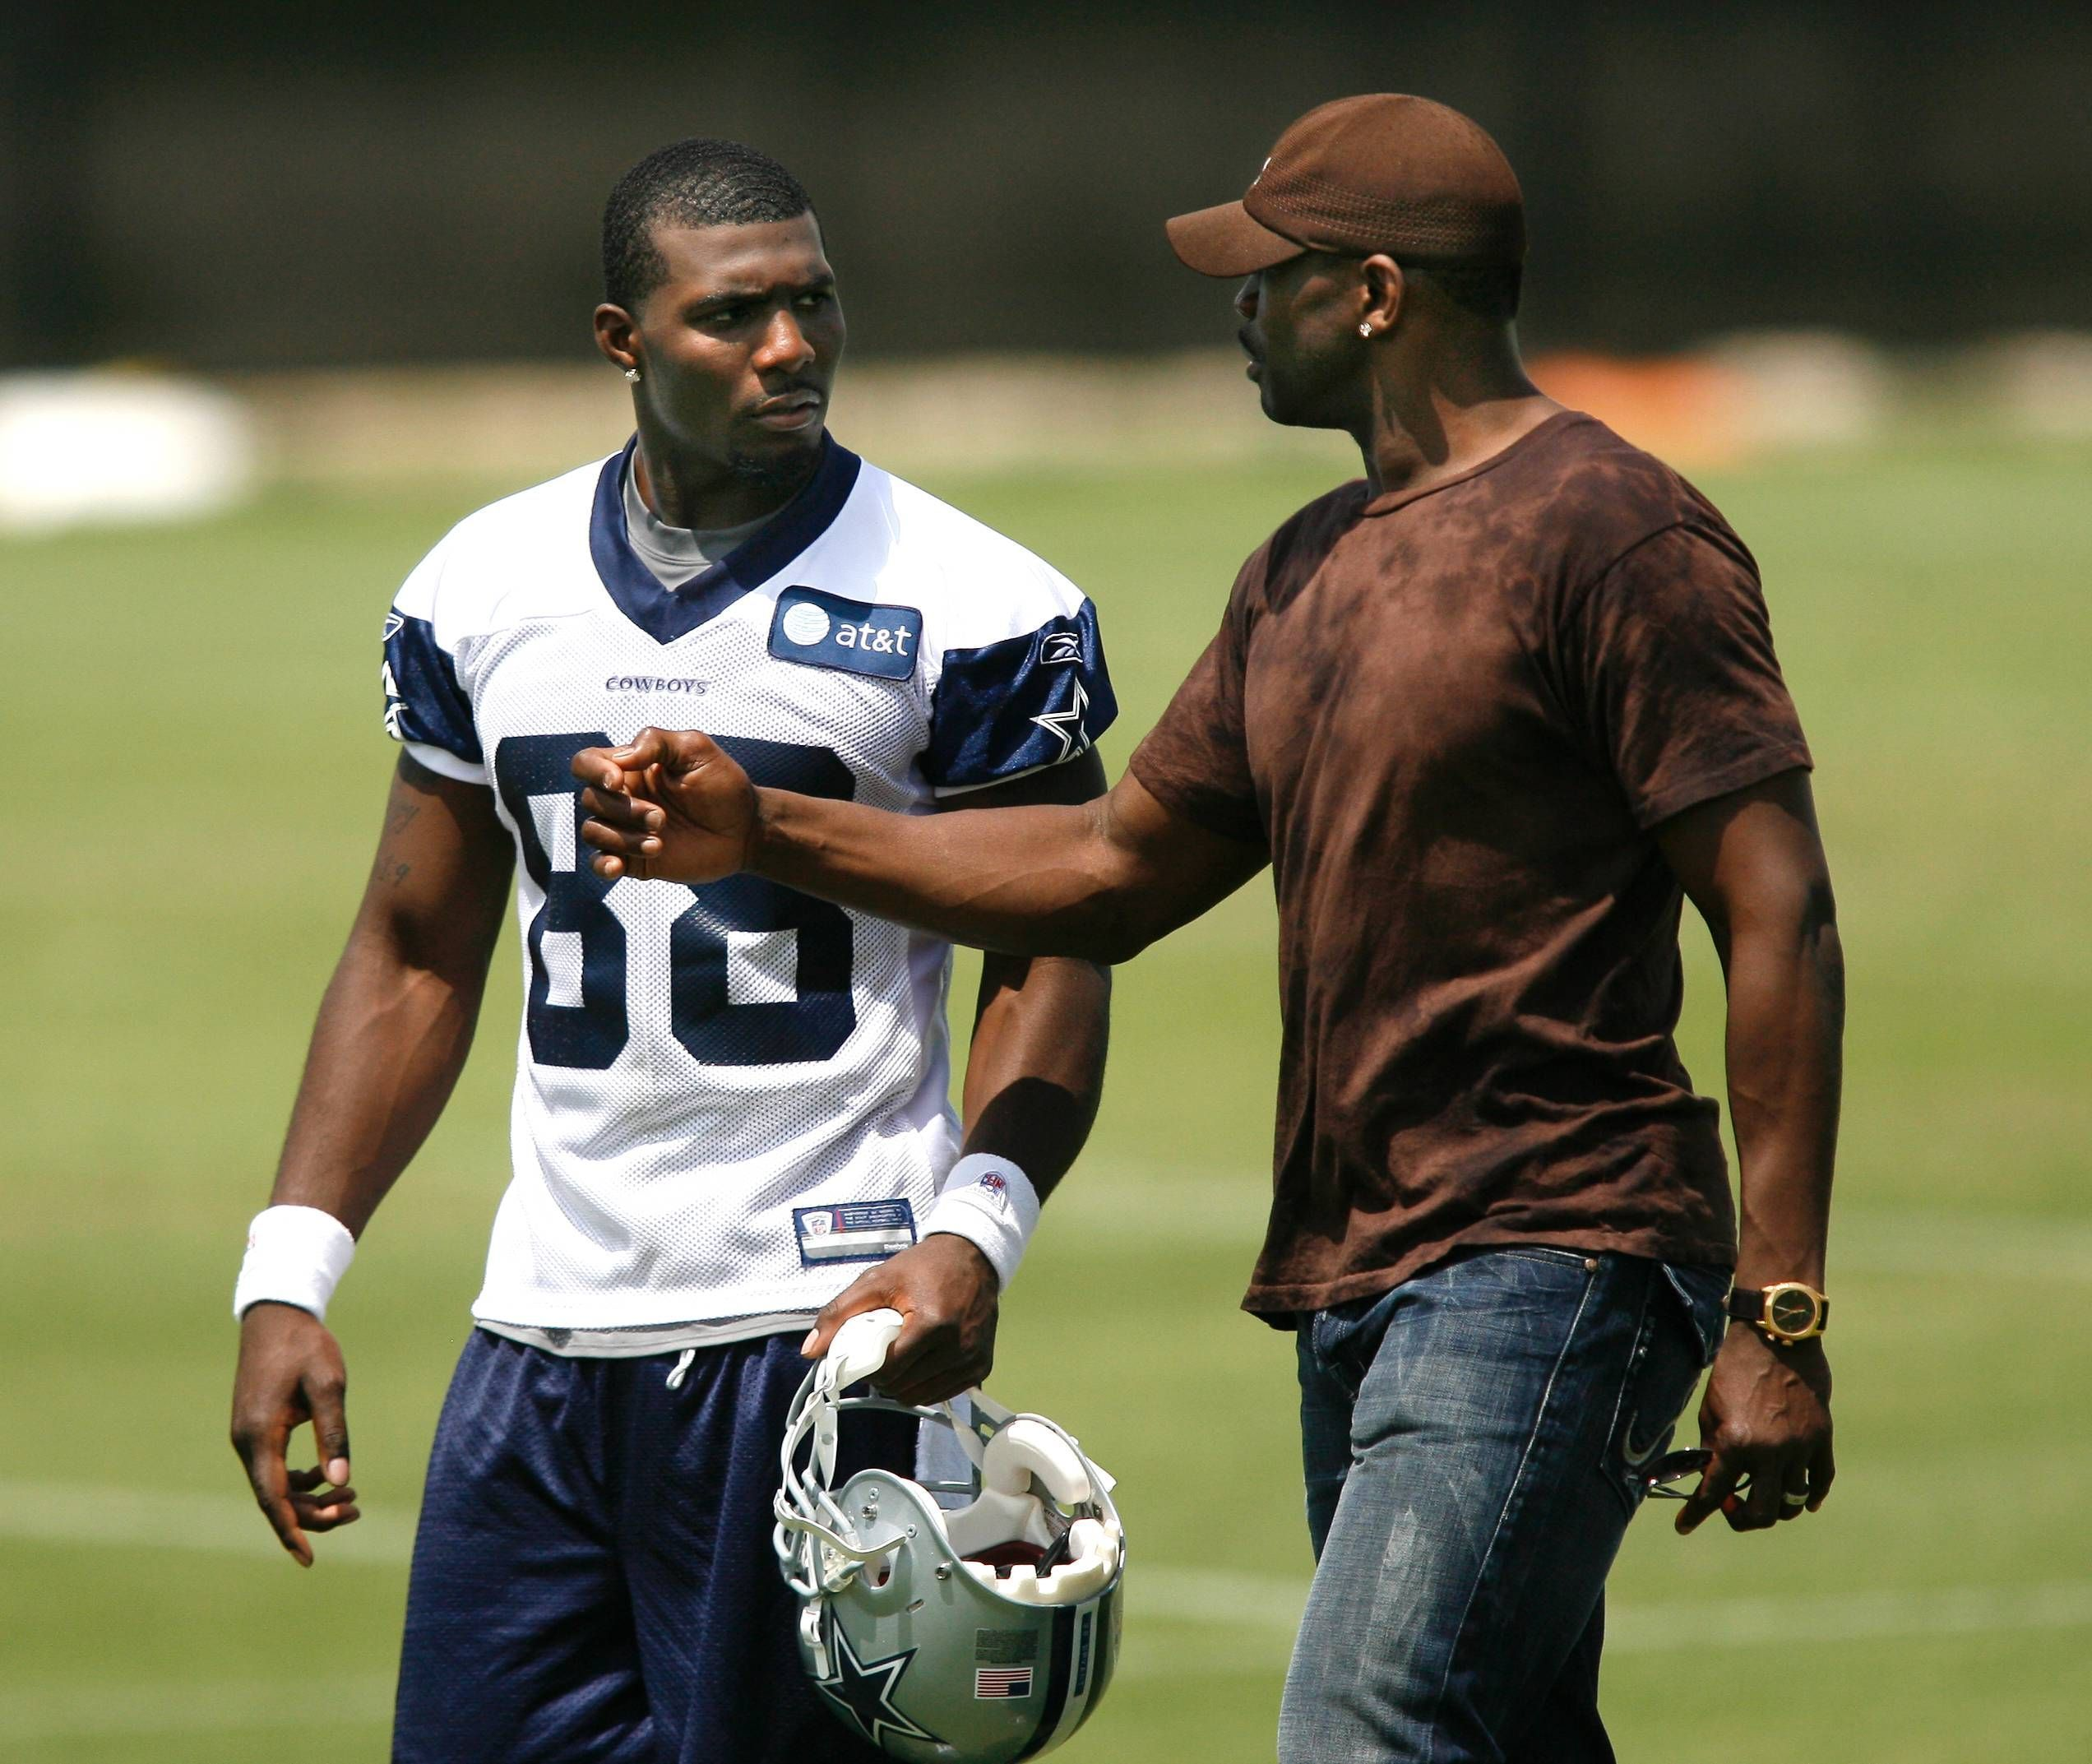 Troy Aikman: Dallas Cowboys WR Dez Bryant 'not nearly the route runner Michael Irvin was' #dezbryant Dez Bryant & Michael Irvin #dezbryant Troy Aikman: Dallas Cowboys WR Dez Bryant 'not nearly the route runner Michael Irvin was' #dezbryant Dez Bryant & Michael Irvin #dezbryant Troy Aikman: Dallas Cowboys WR Dez Bryant 'not nearly the route runner Michael Irvin was' #dezbryant Dez Bryant & Michael Irvin #dezbryant Troy Aikman: Dallas Cowboys WR Dez Bryant 'not nearly the route runner Michael Irvi #dezbryant